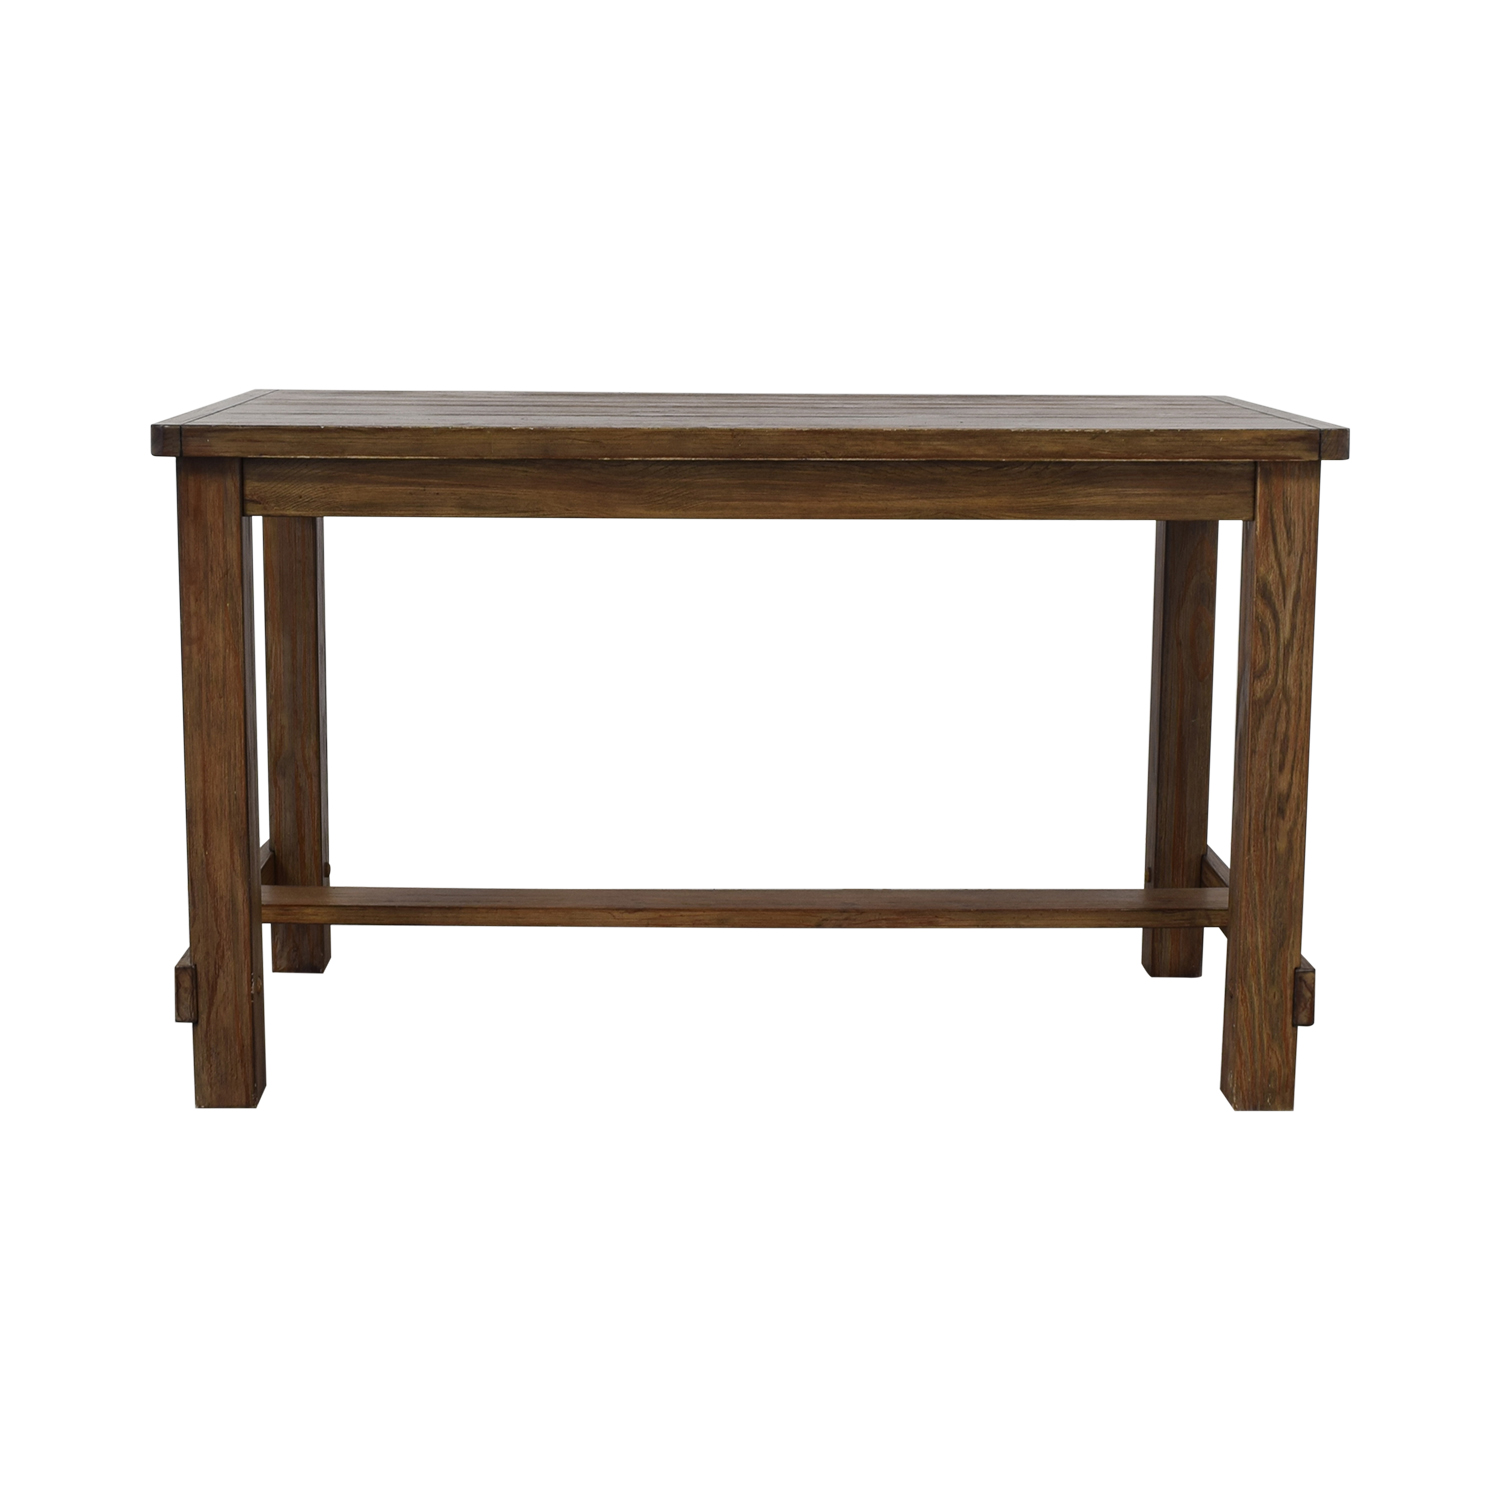 Ashley Furniture Ashley Furniture Wooden Counter Height Kitchen Table brown